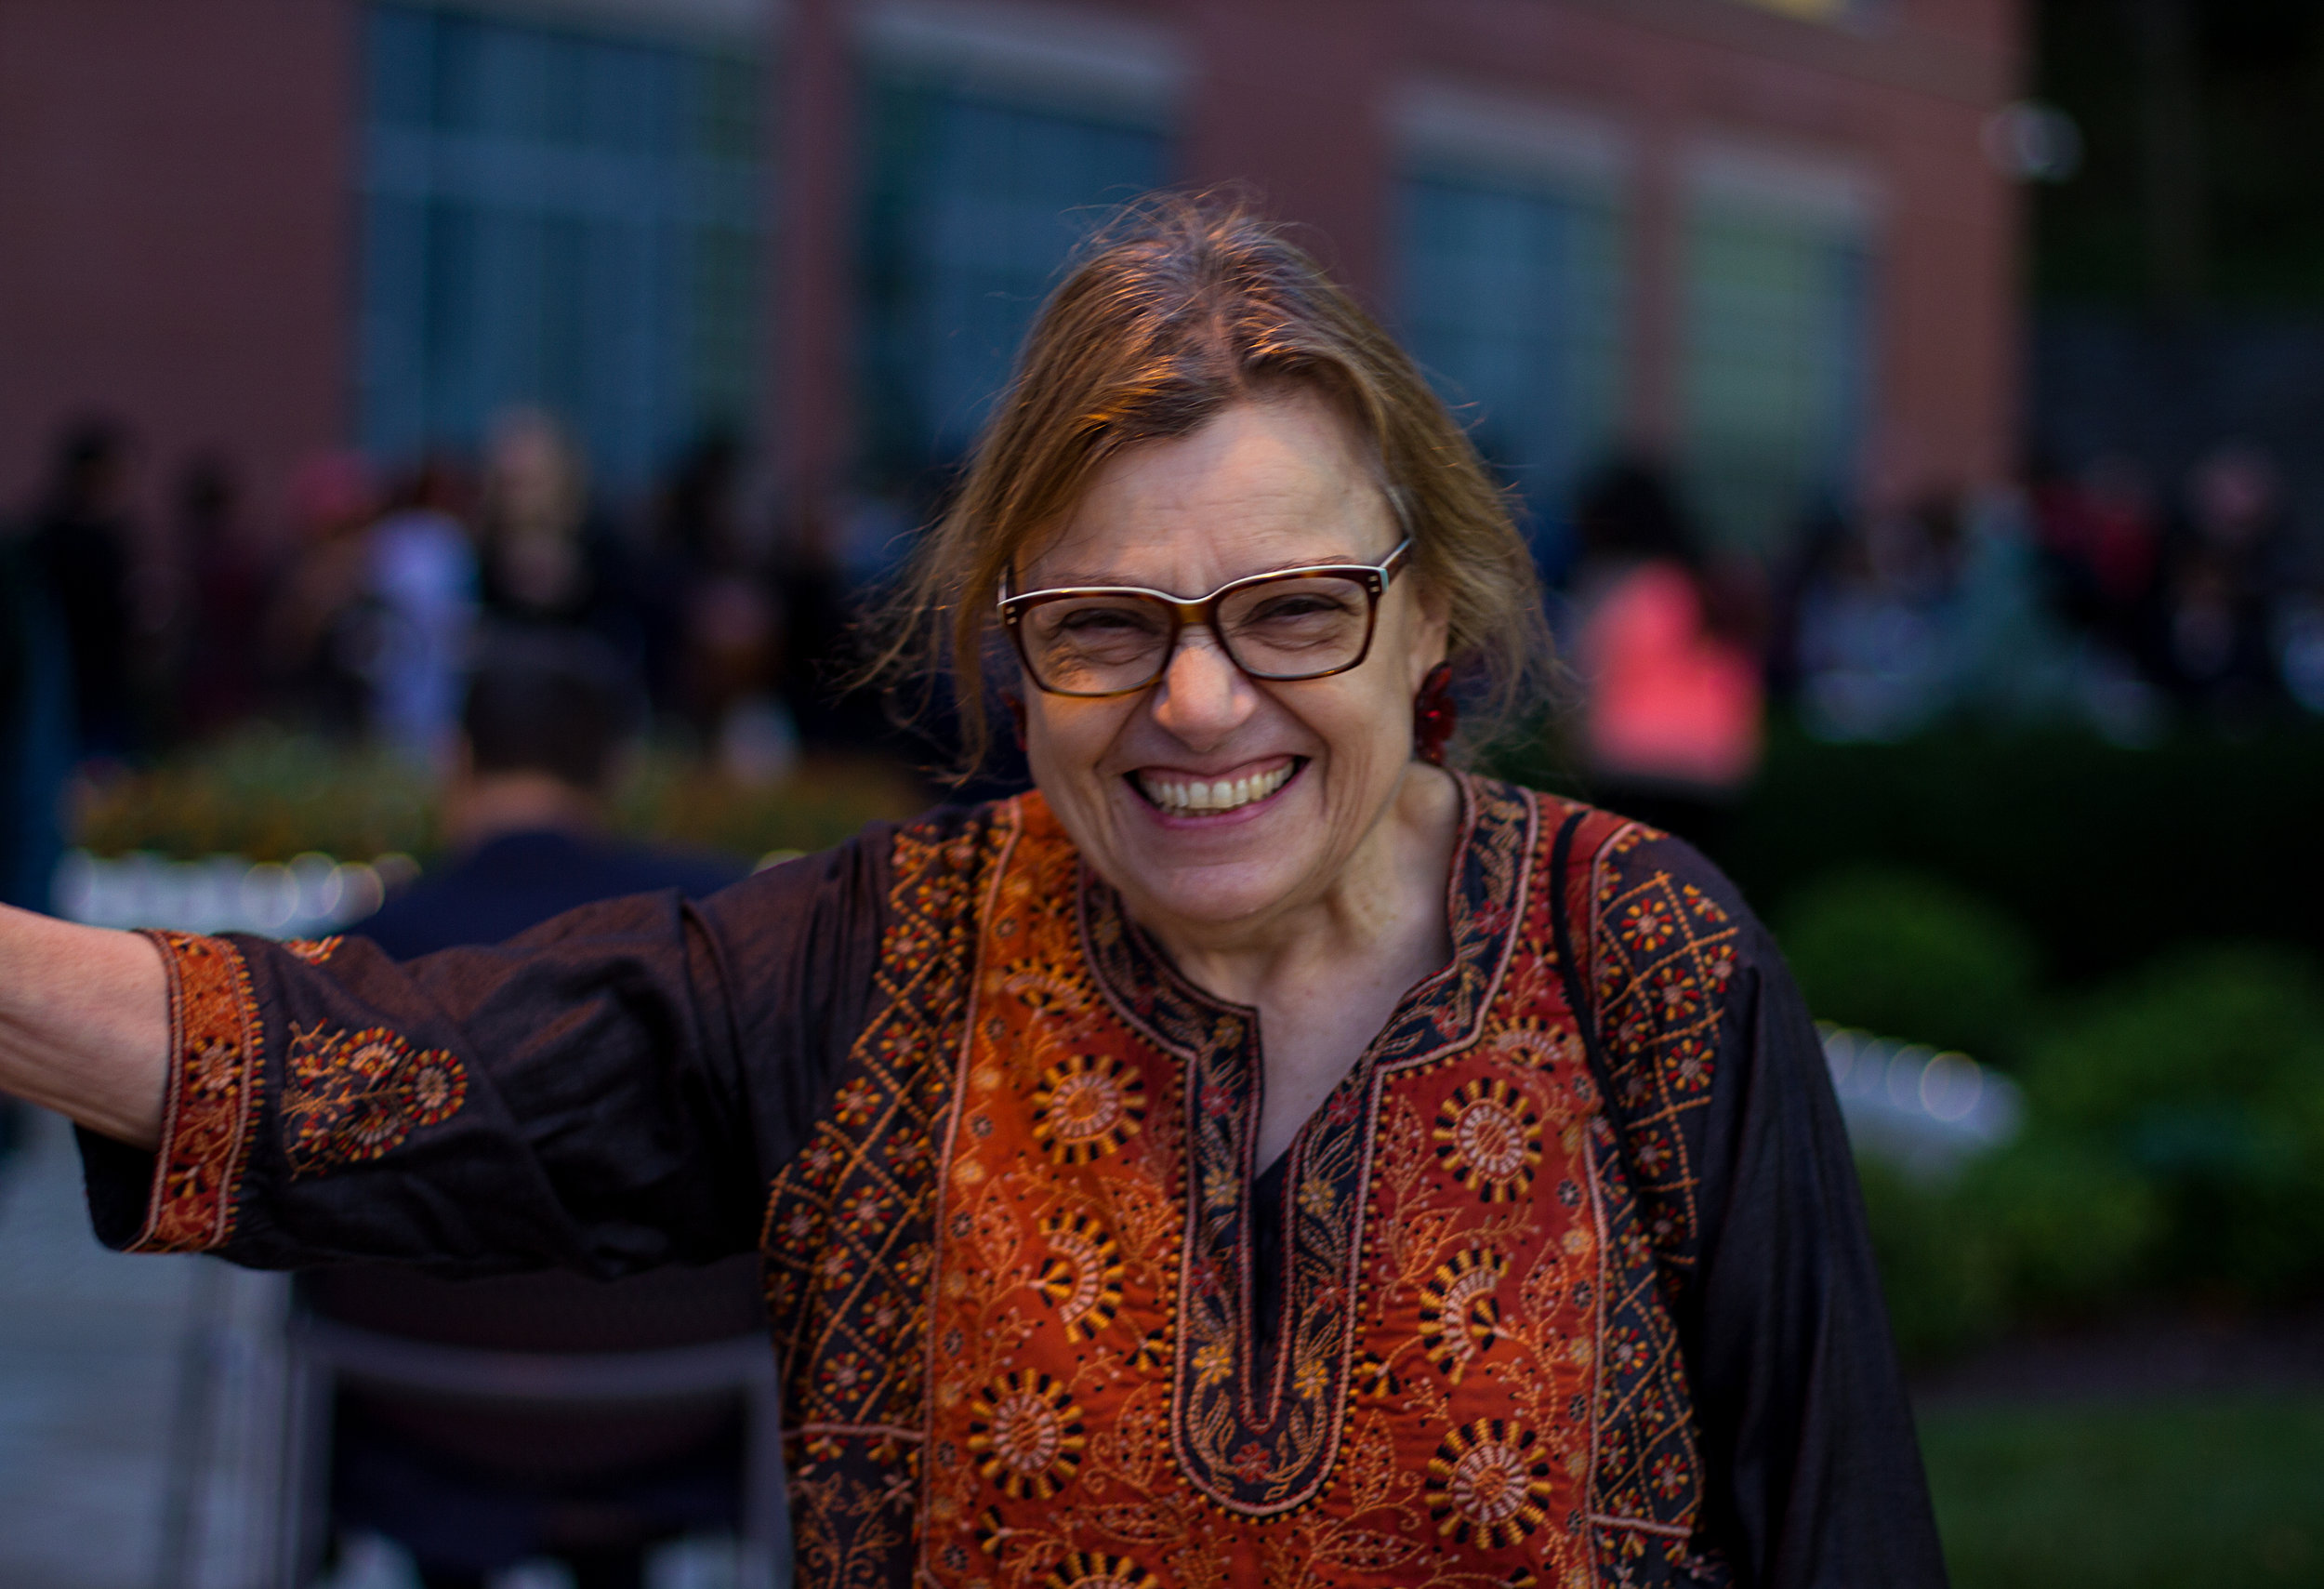 Joanne Waghorn is a professor at Syracuse University and teaches religion. She has been teaching for more than three decades, previously taught Hinduism at University of North Carolina. Photo by Hanna Benavides.